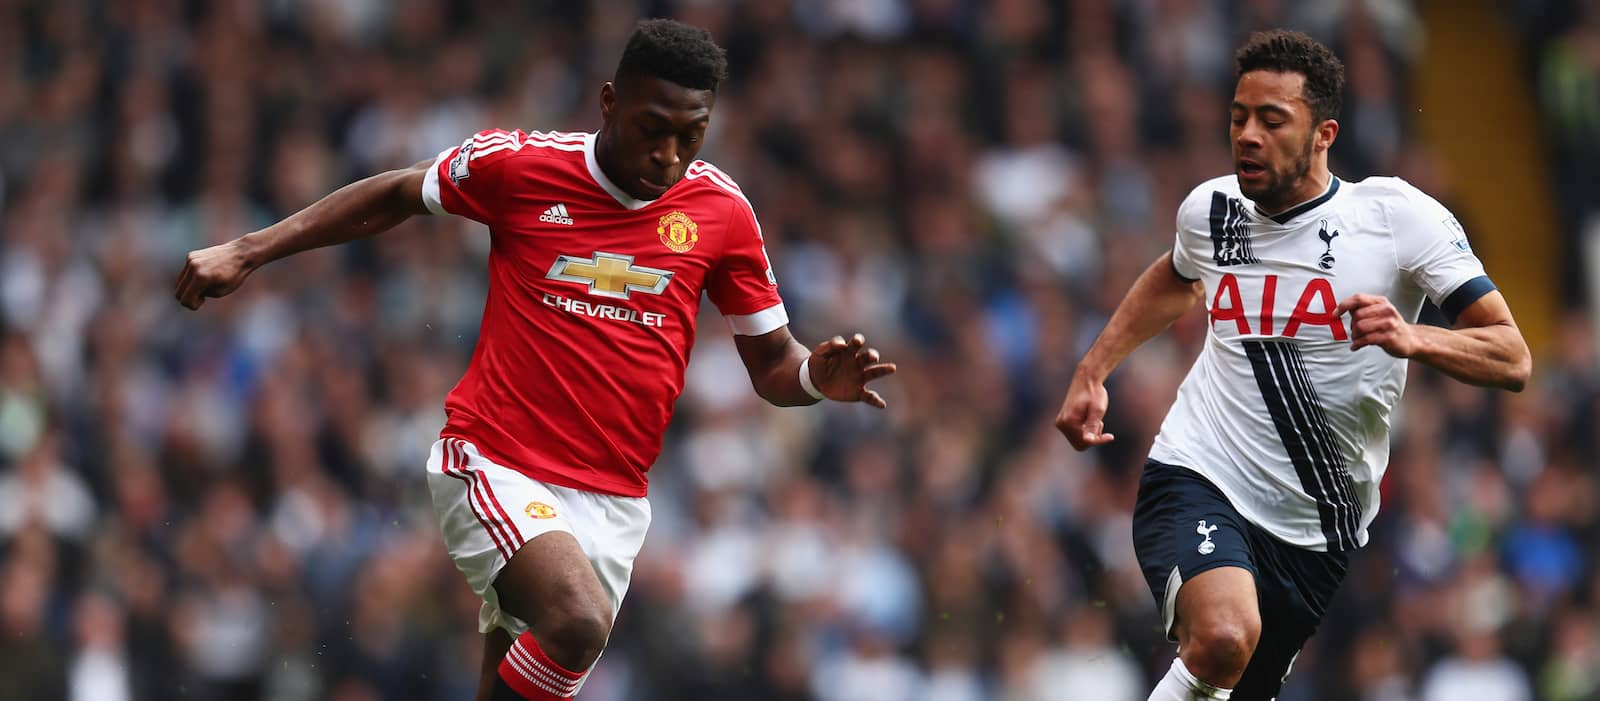 Timothy Fosu-Mensah opens up about his lack of game-time at Manchester United